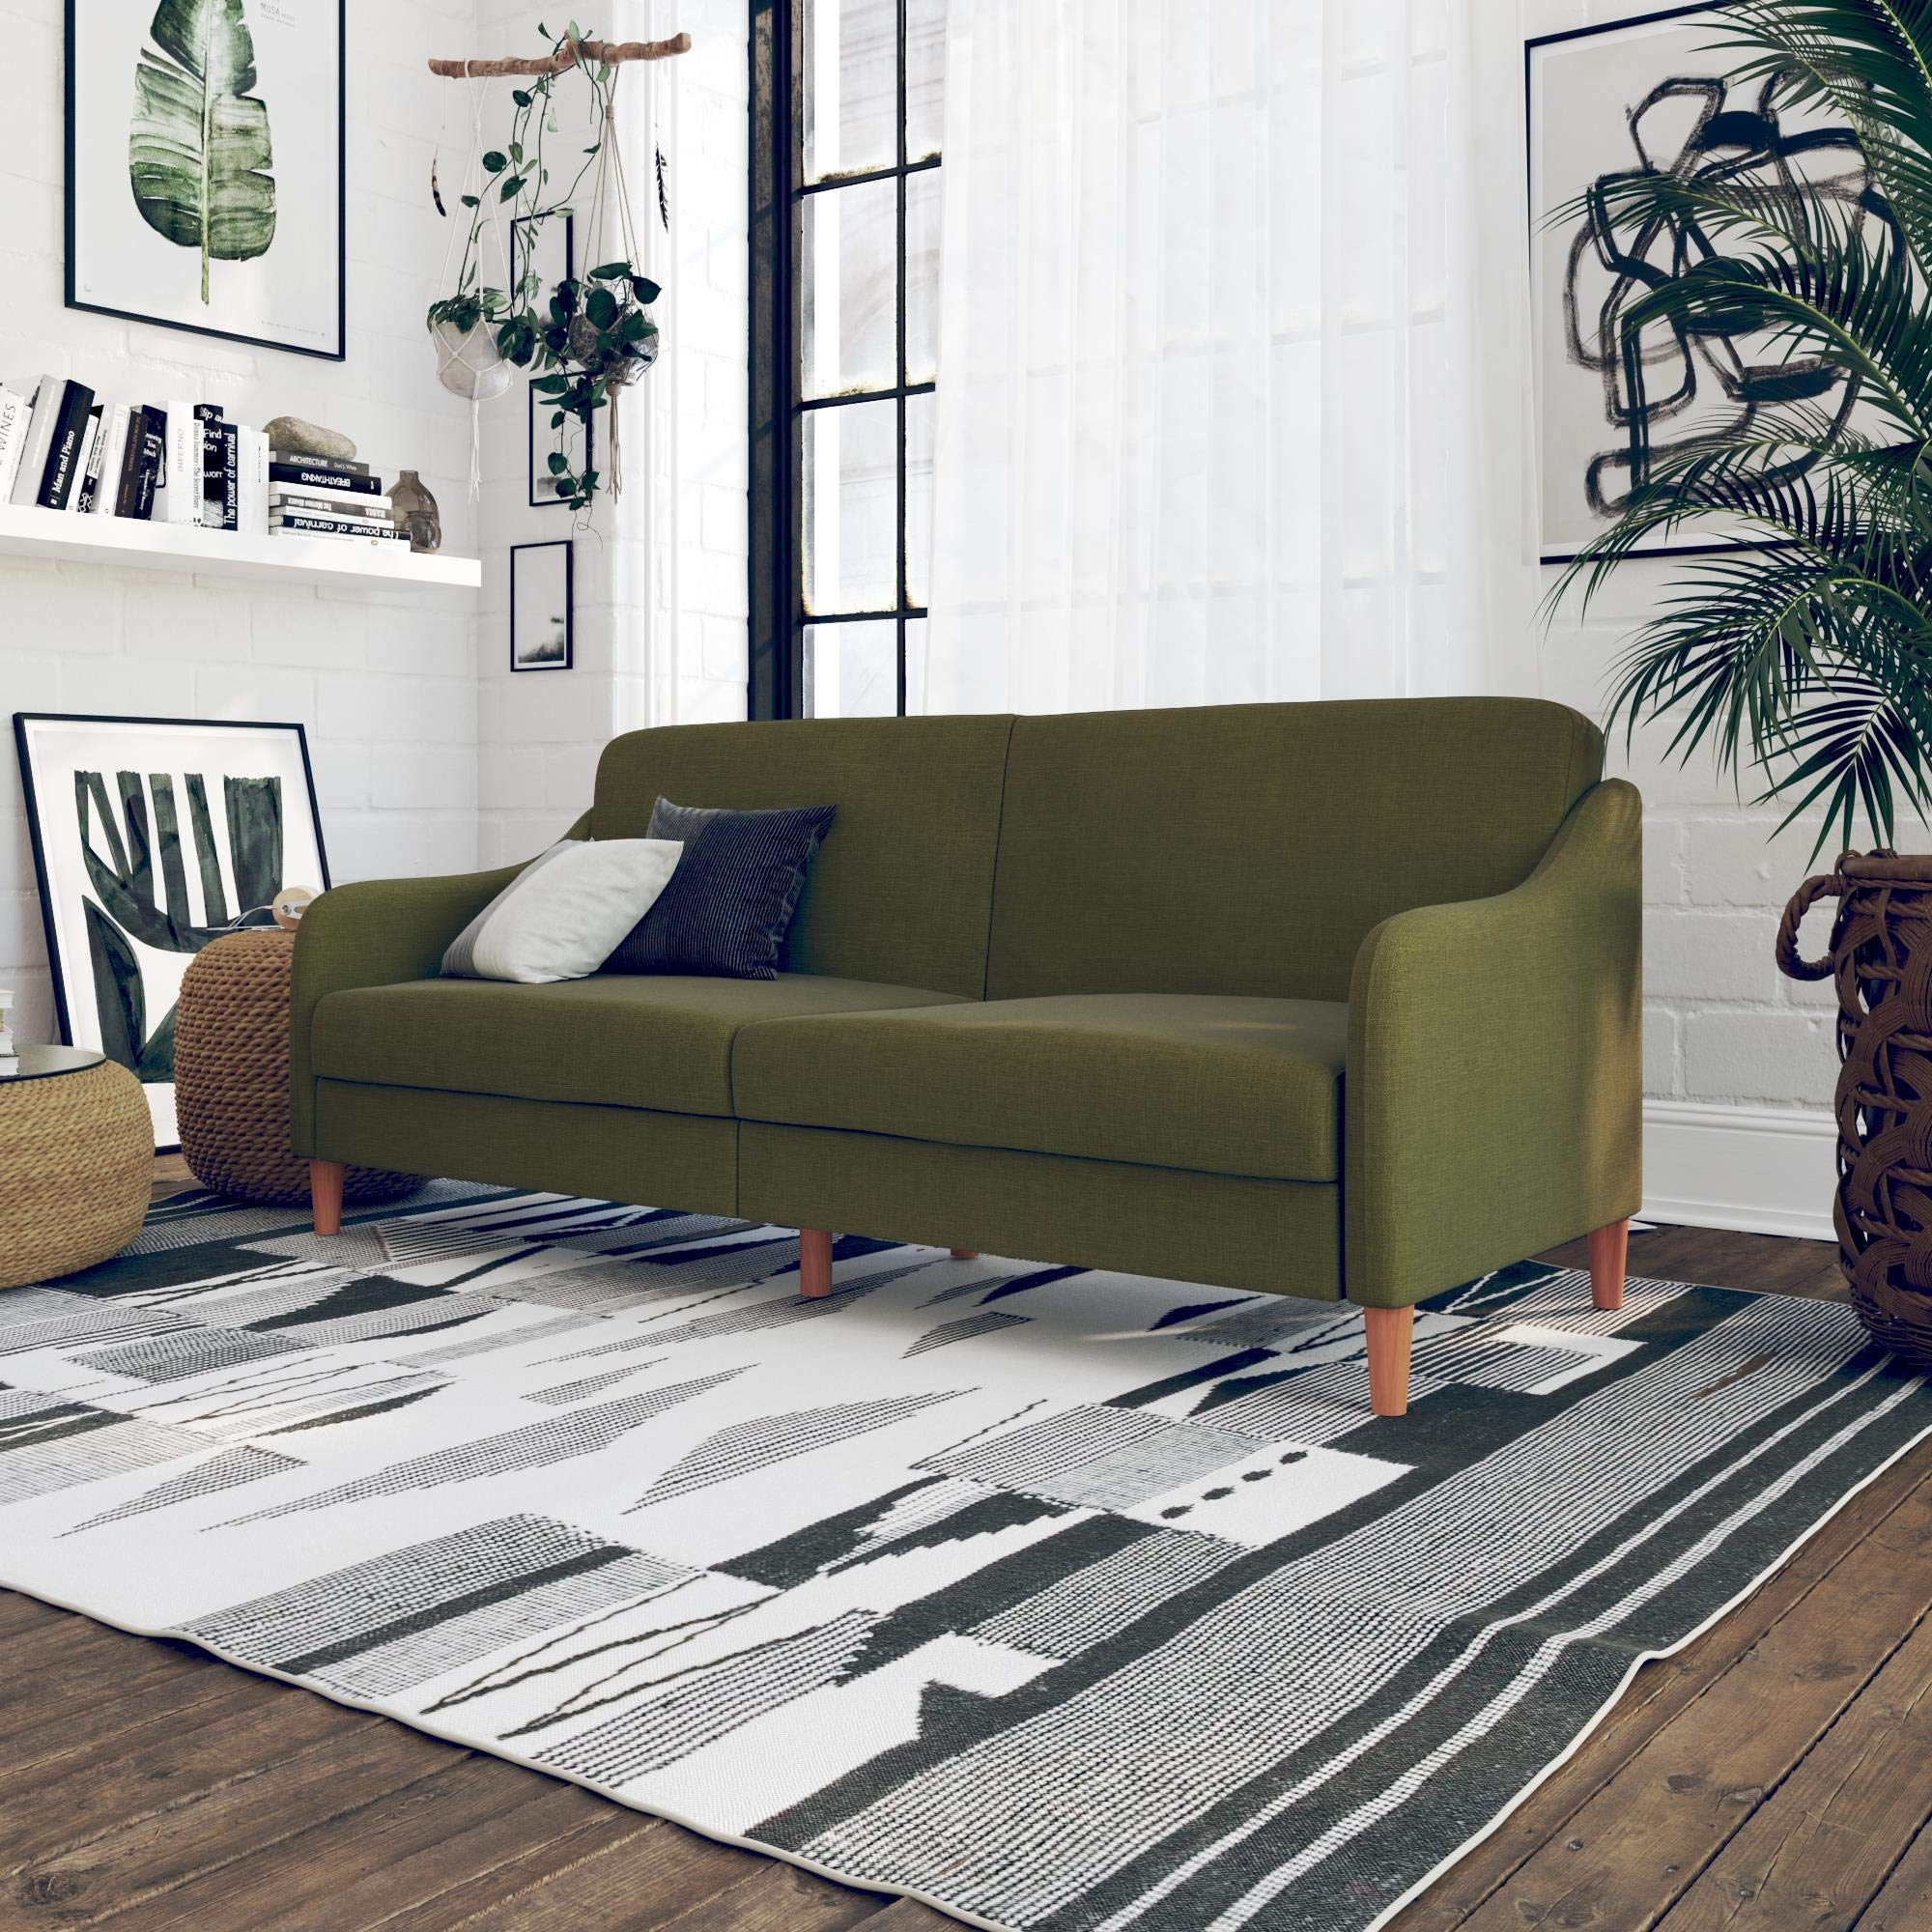 Upholstered Modern Design Futon Couch, Elegant wing shaped arms, Rounded wood legs, Independently encased coils and foam seating, Assembles quickly, Sturdy and durable long use, Green Color by Diversified Closet